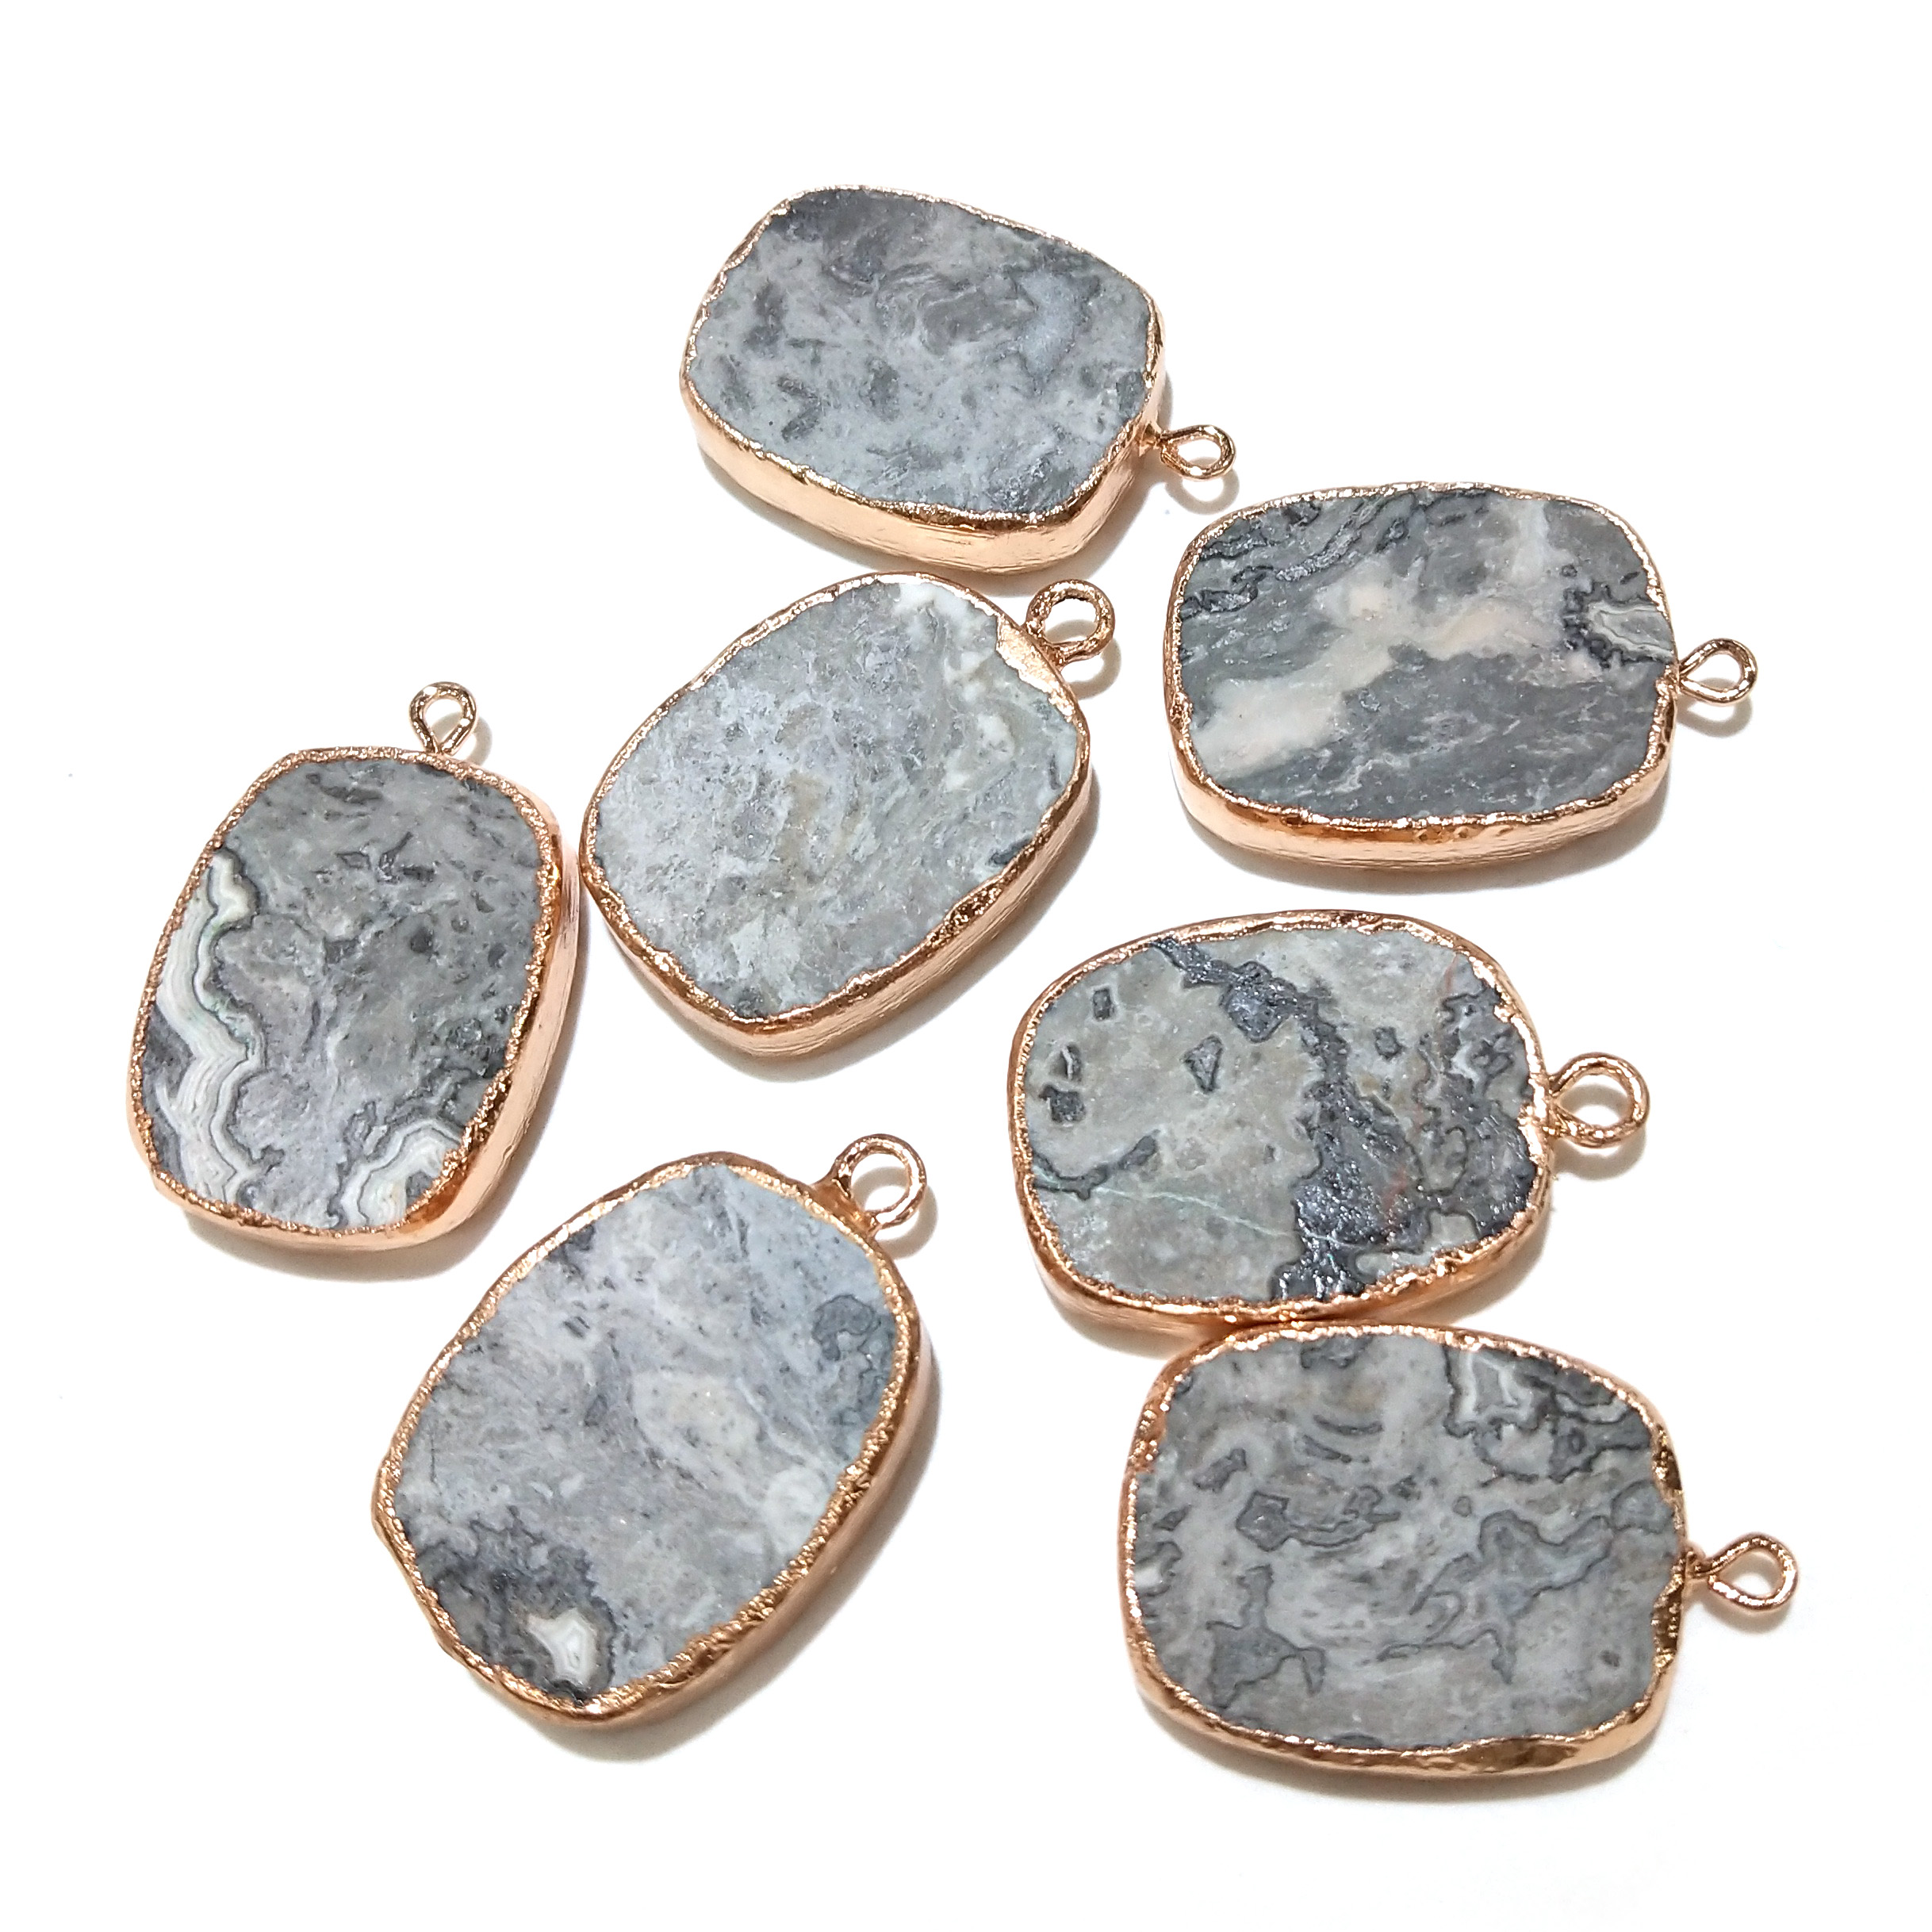 Wholesale 1pcs Natural Stone Pendants Charms Crystal for Jewelry Making Pillar Chakra & Necklaces